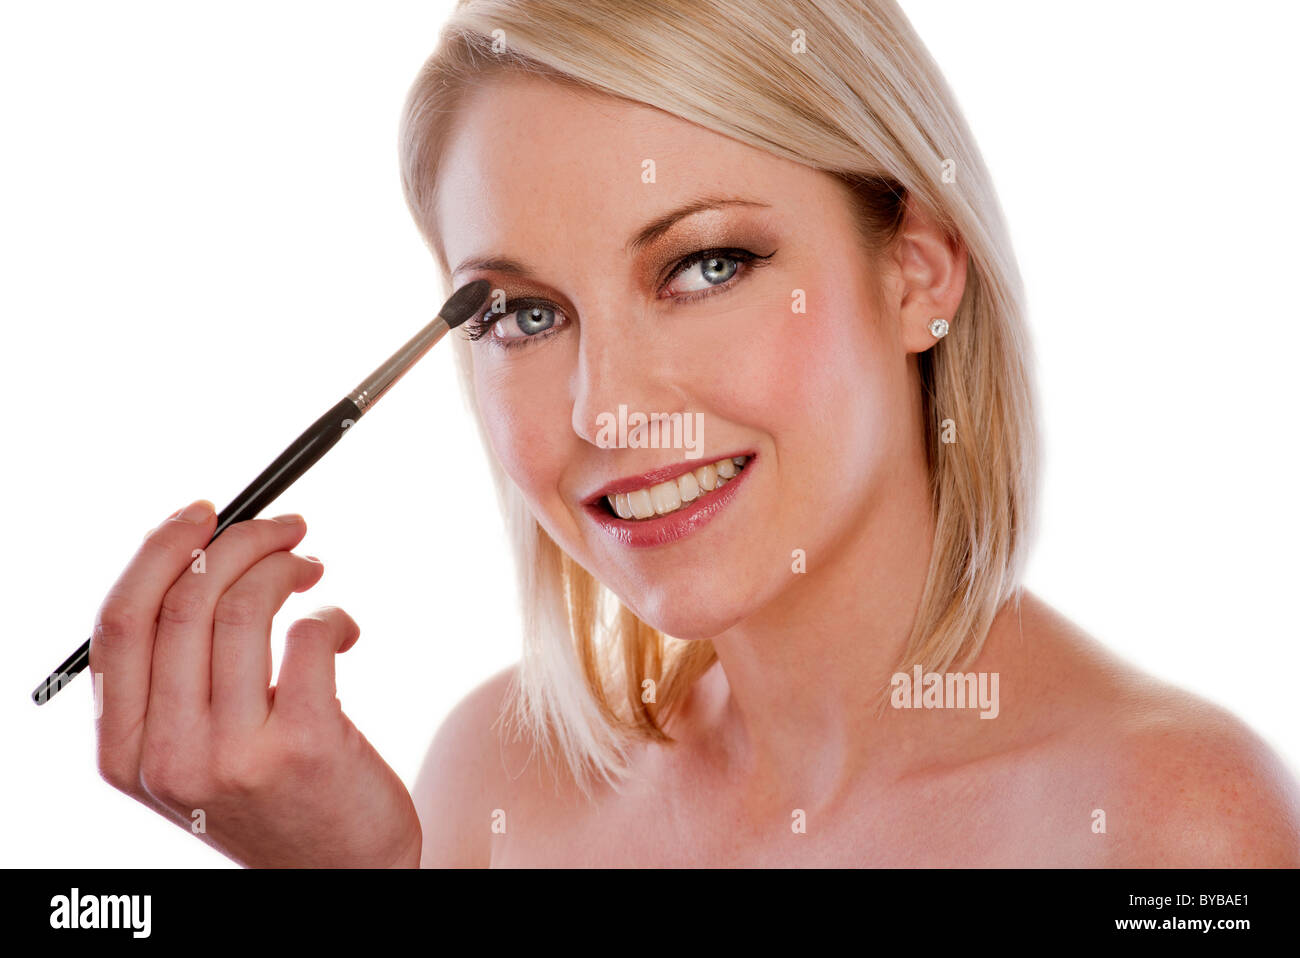 blonde woman applying eyeshadow with a brush - Stock Image